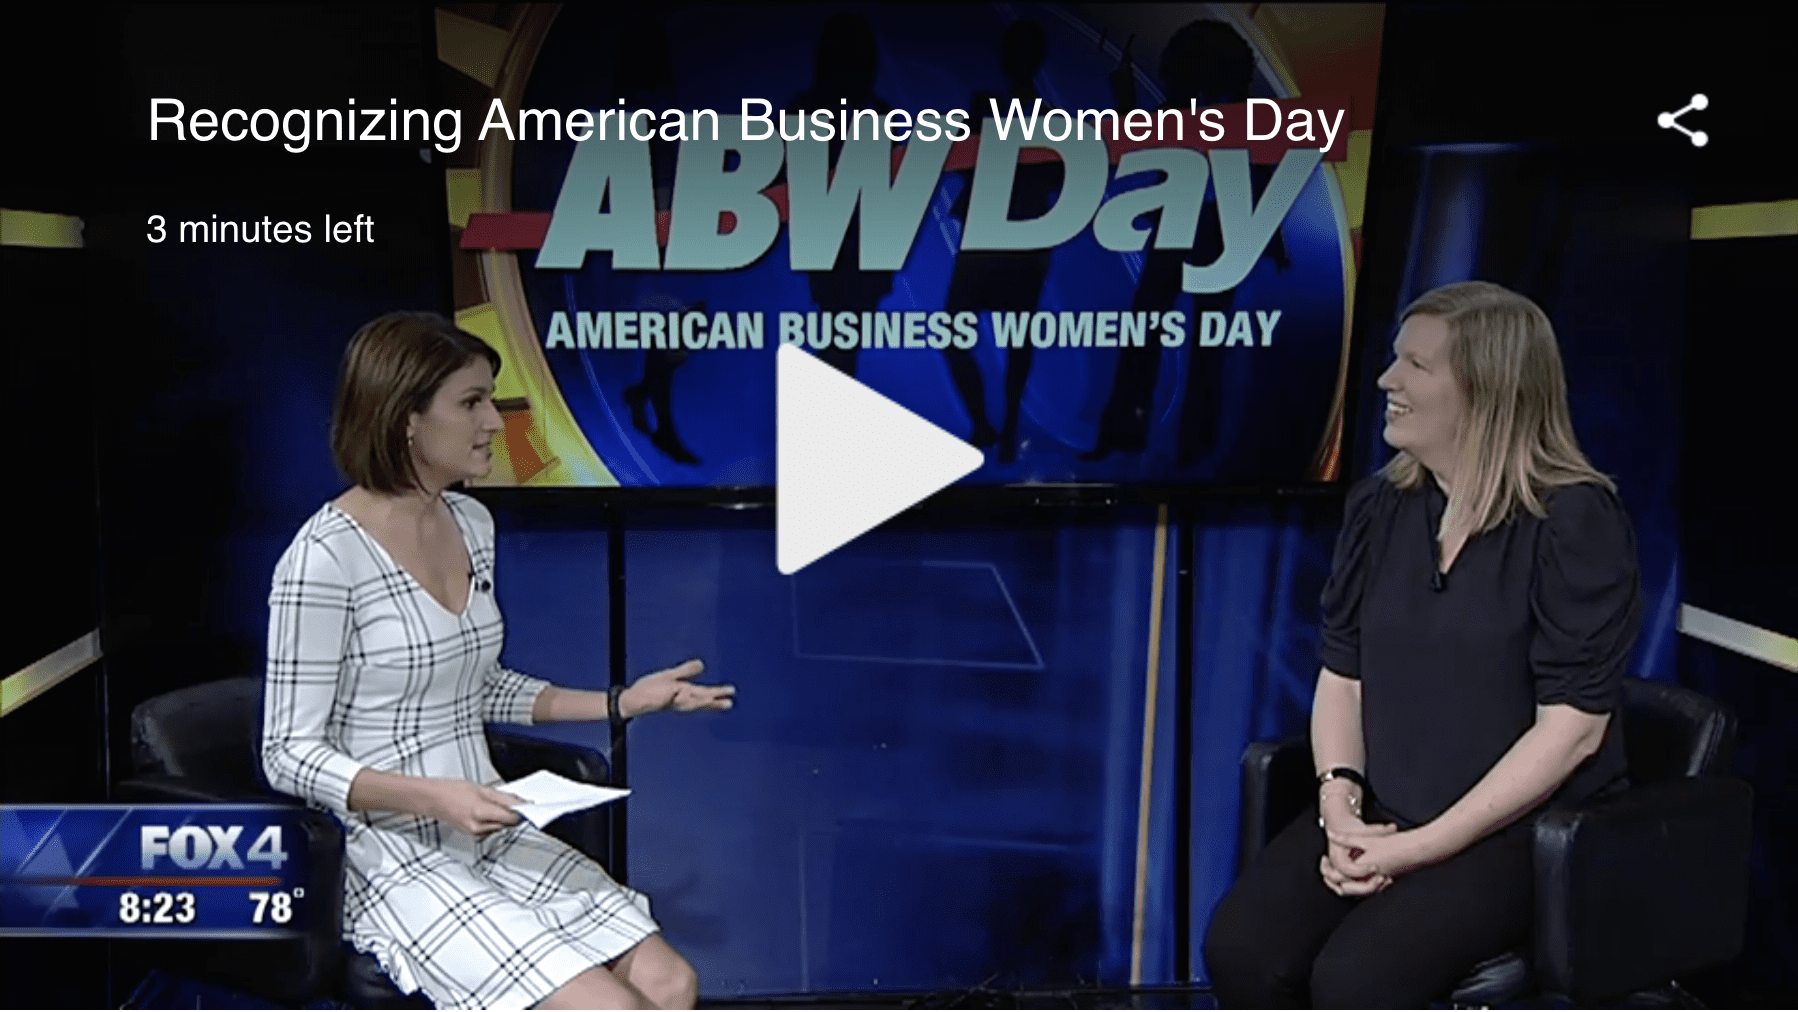 Recognizing American Business Women's Day | Fox 4 News